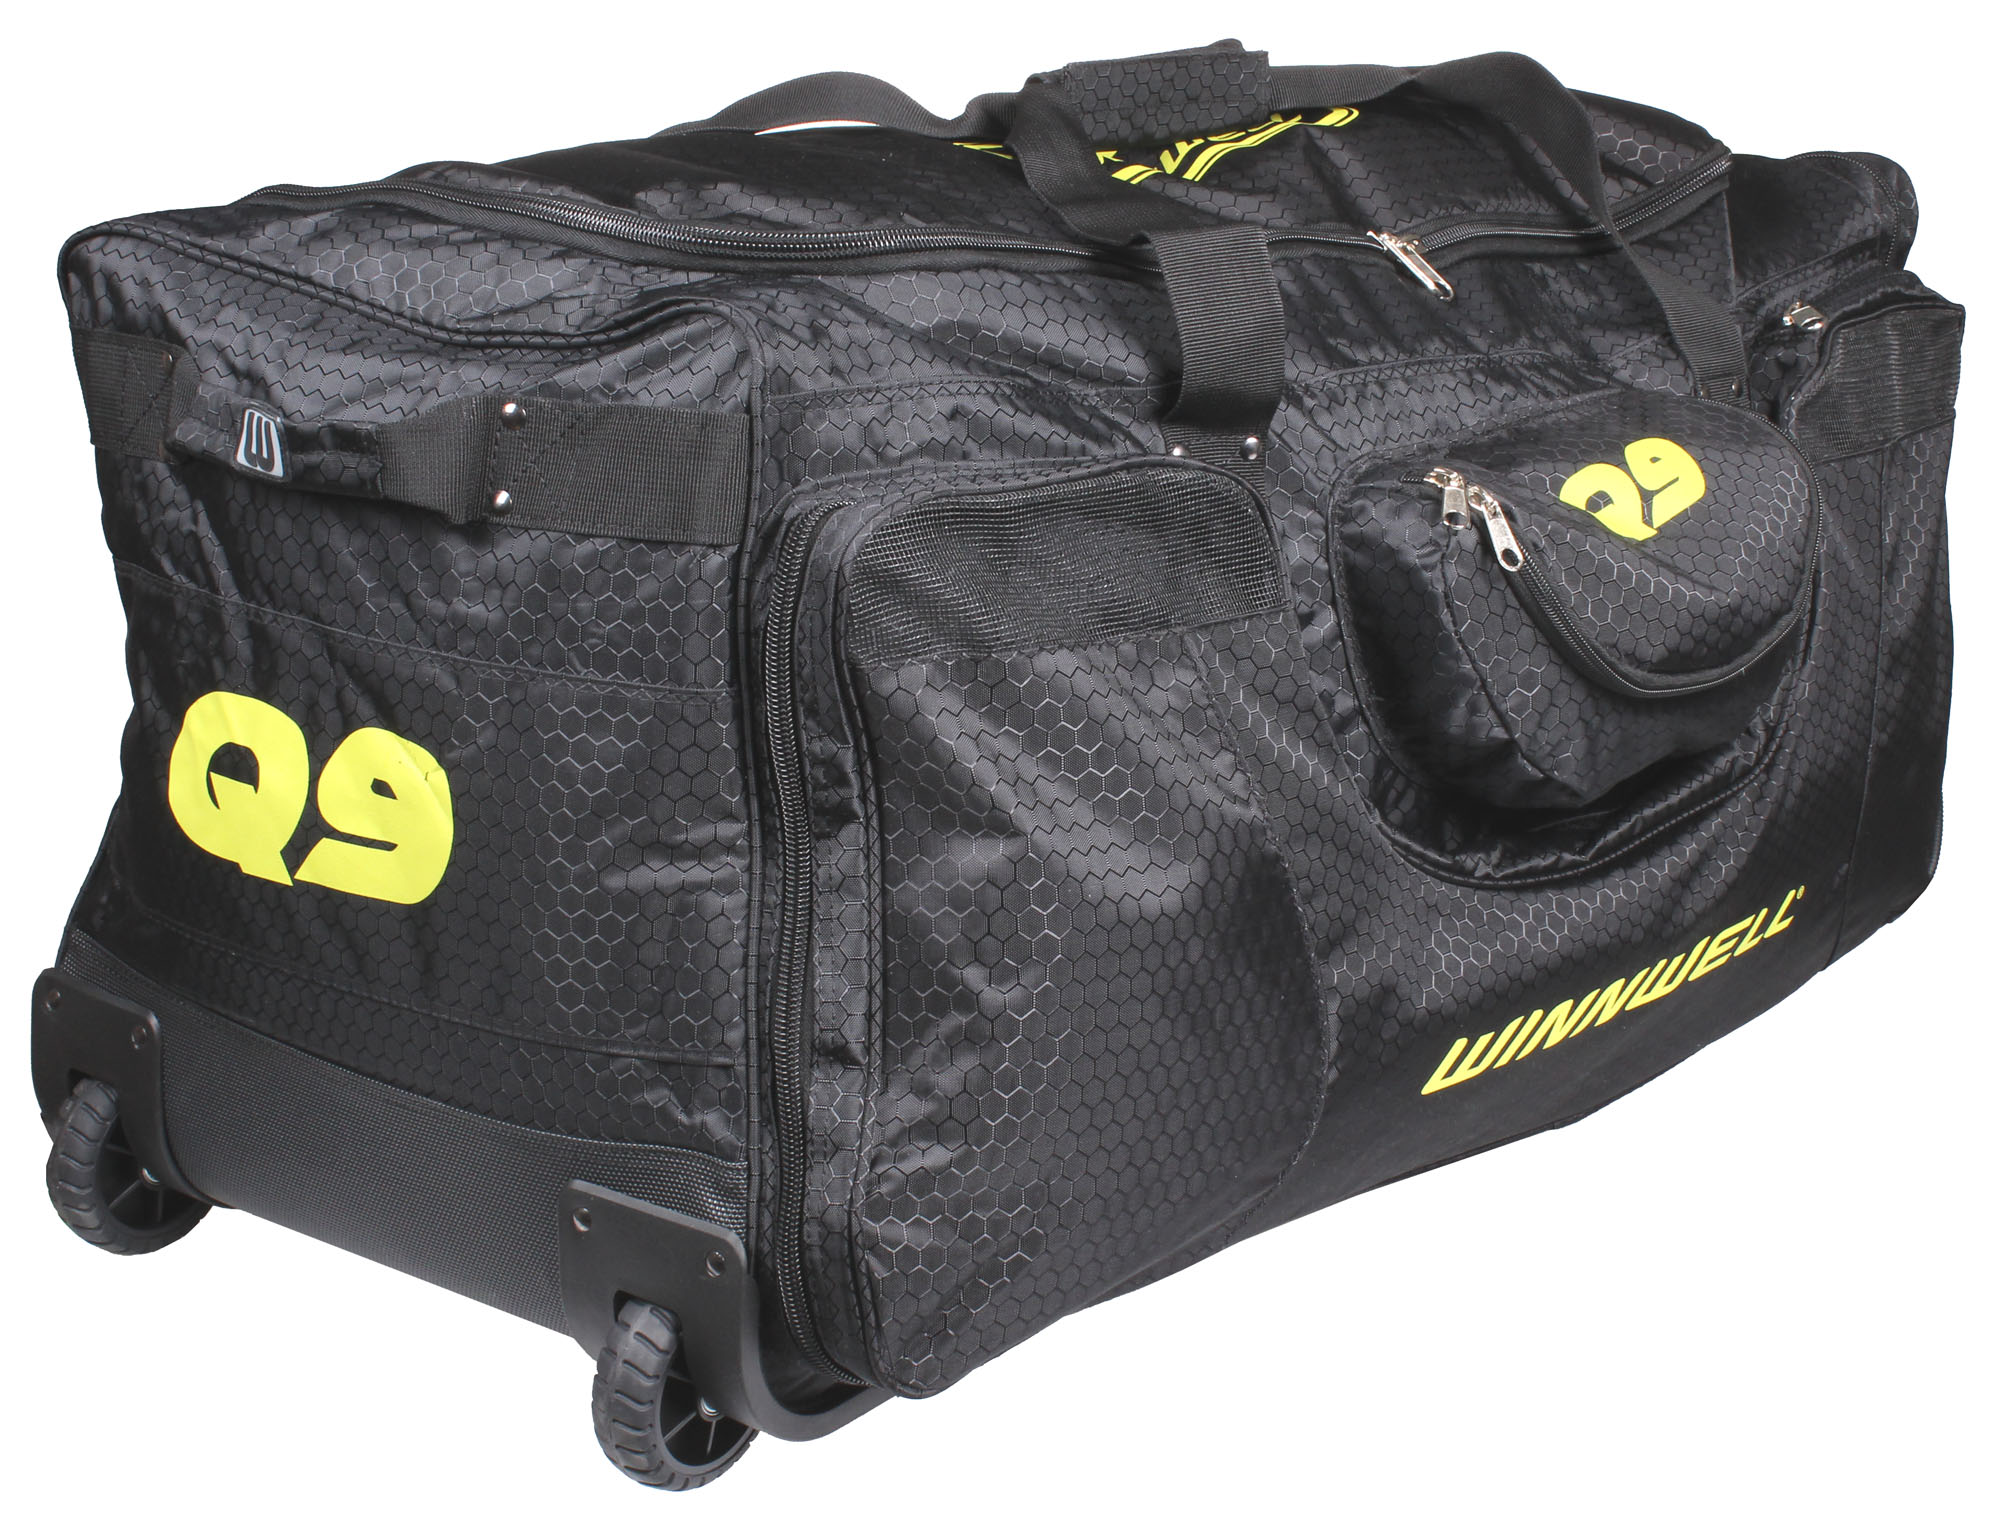 Taška Winnwell Q9 Wheel Bag SR. - black